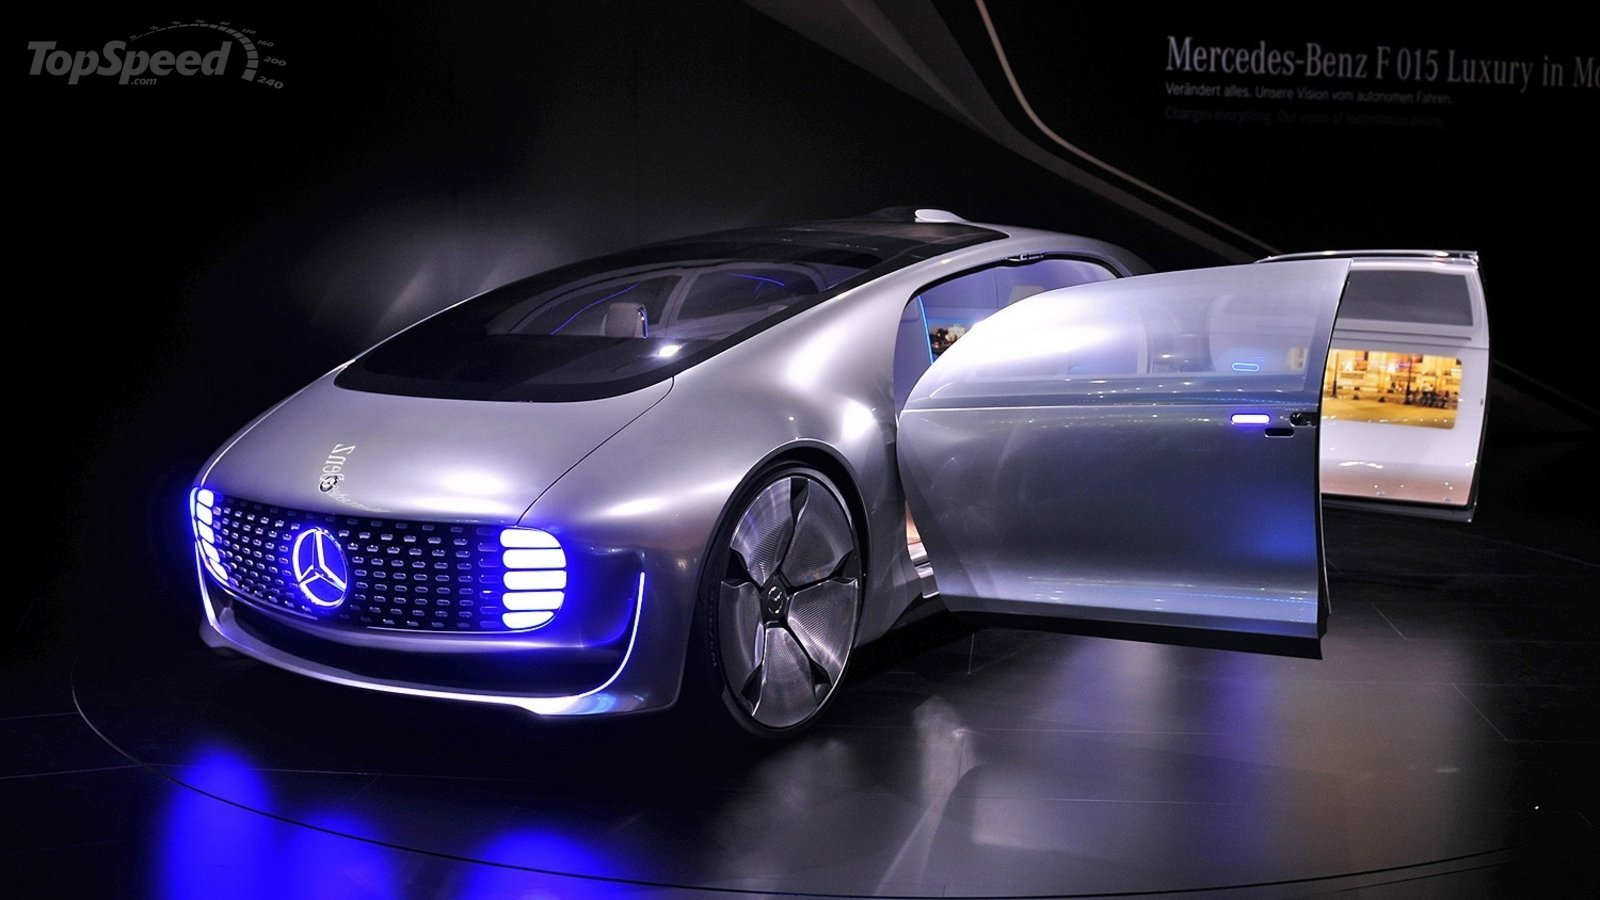 2015 mercedes benz f 015 luxury in motion review gallery. Black Bedroom Furniture Sets. Home Design Ideas